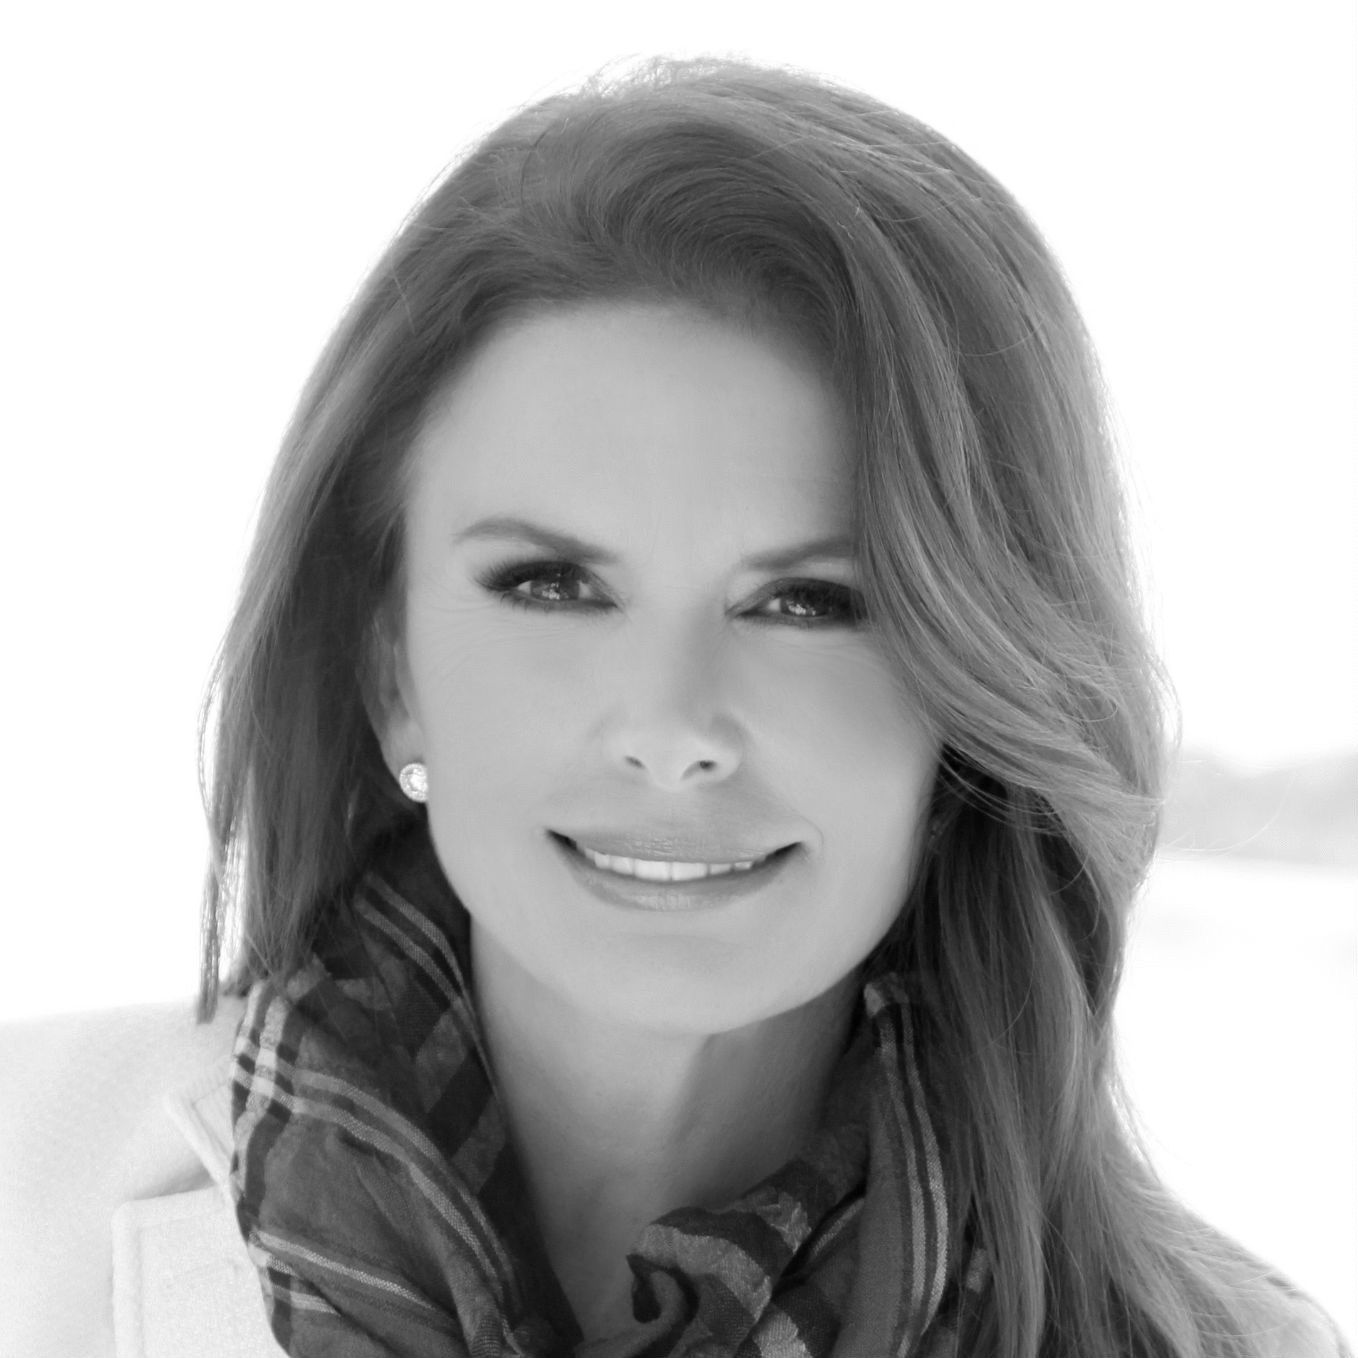 Roma Downey Headshot